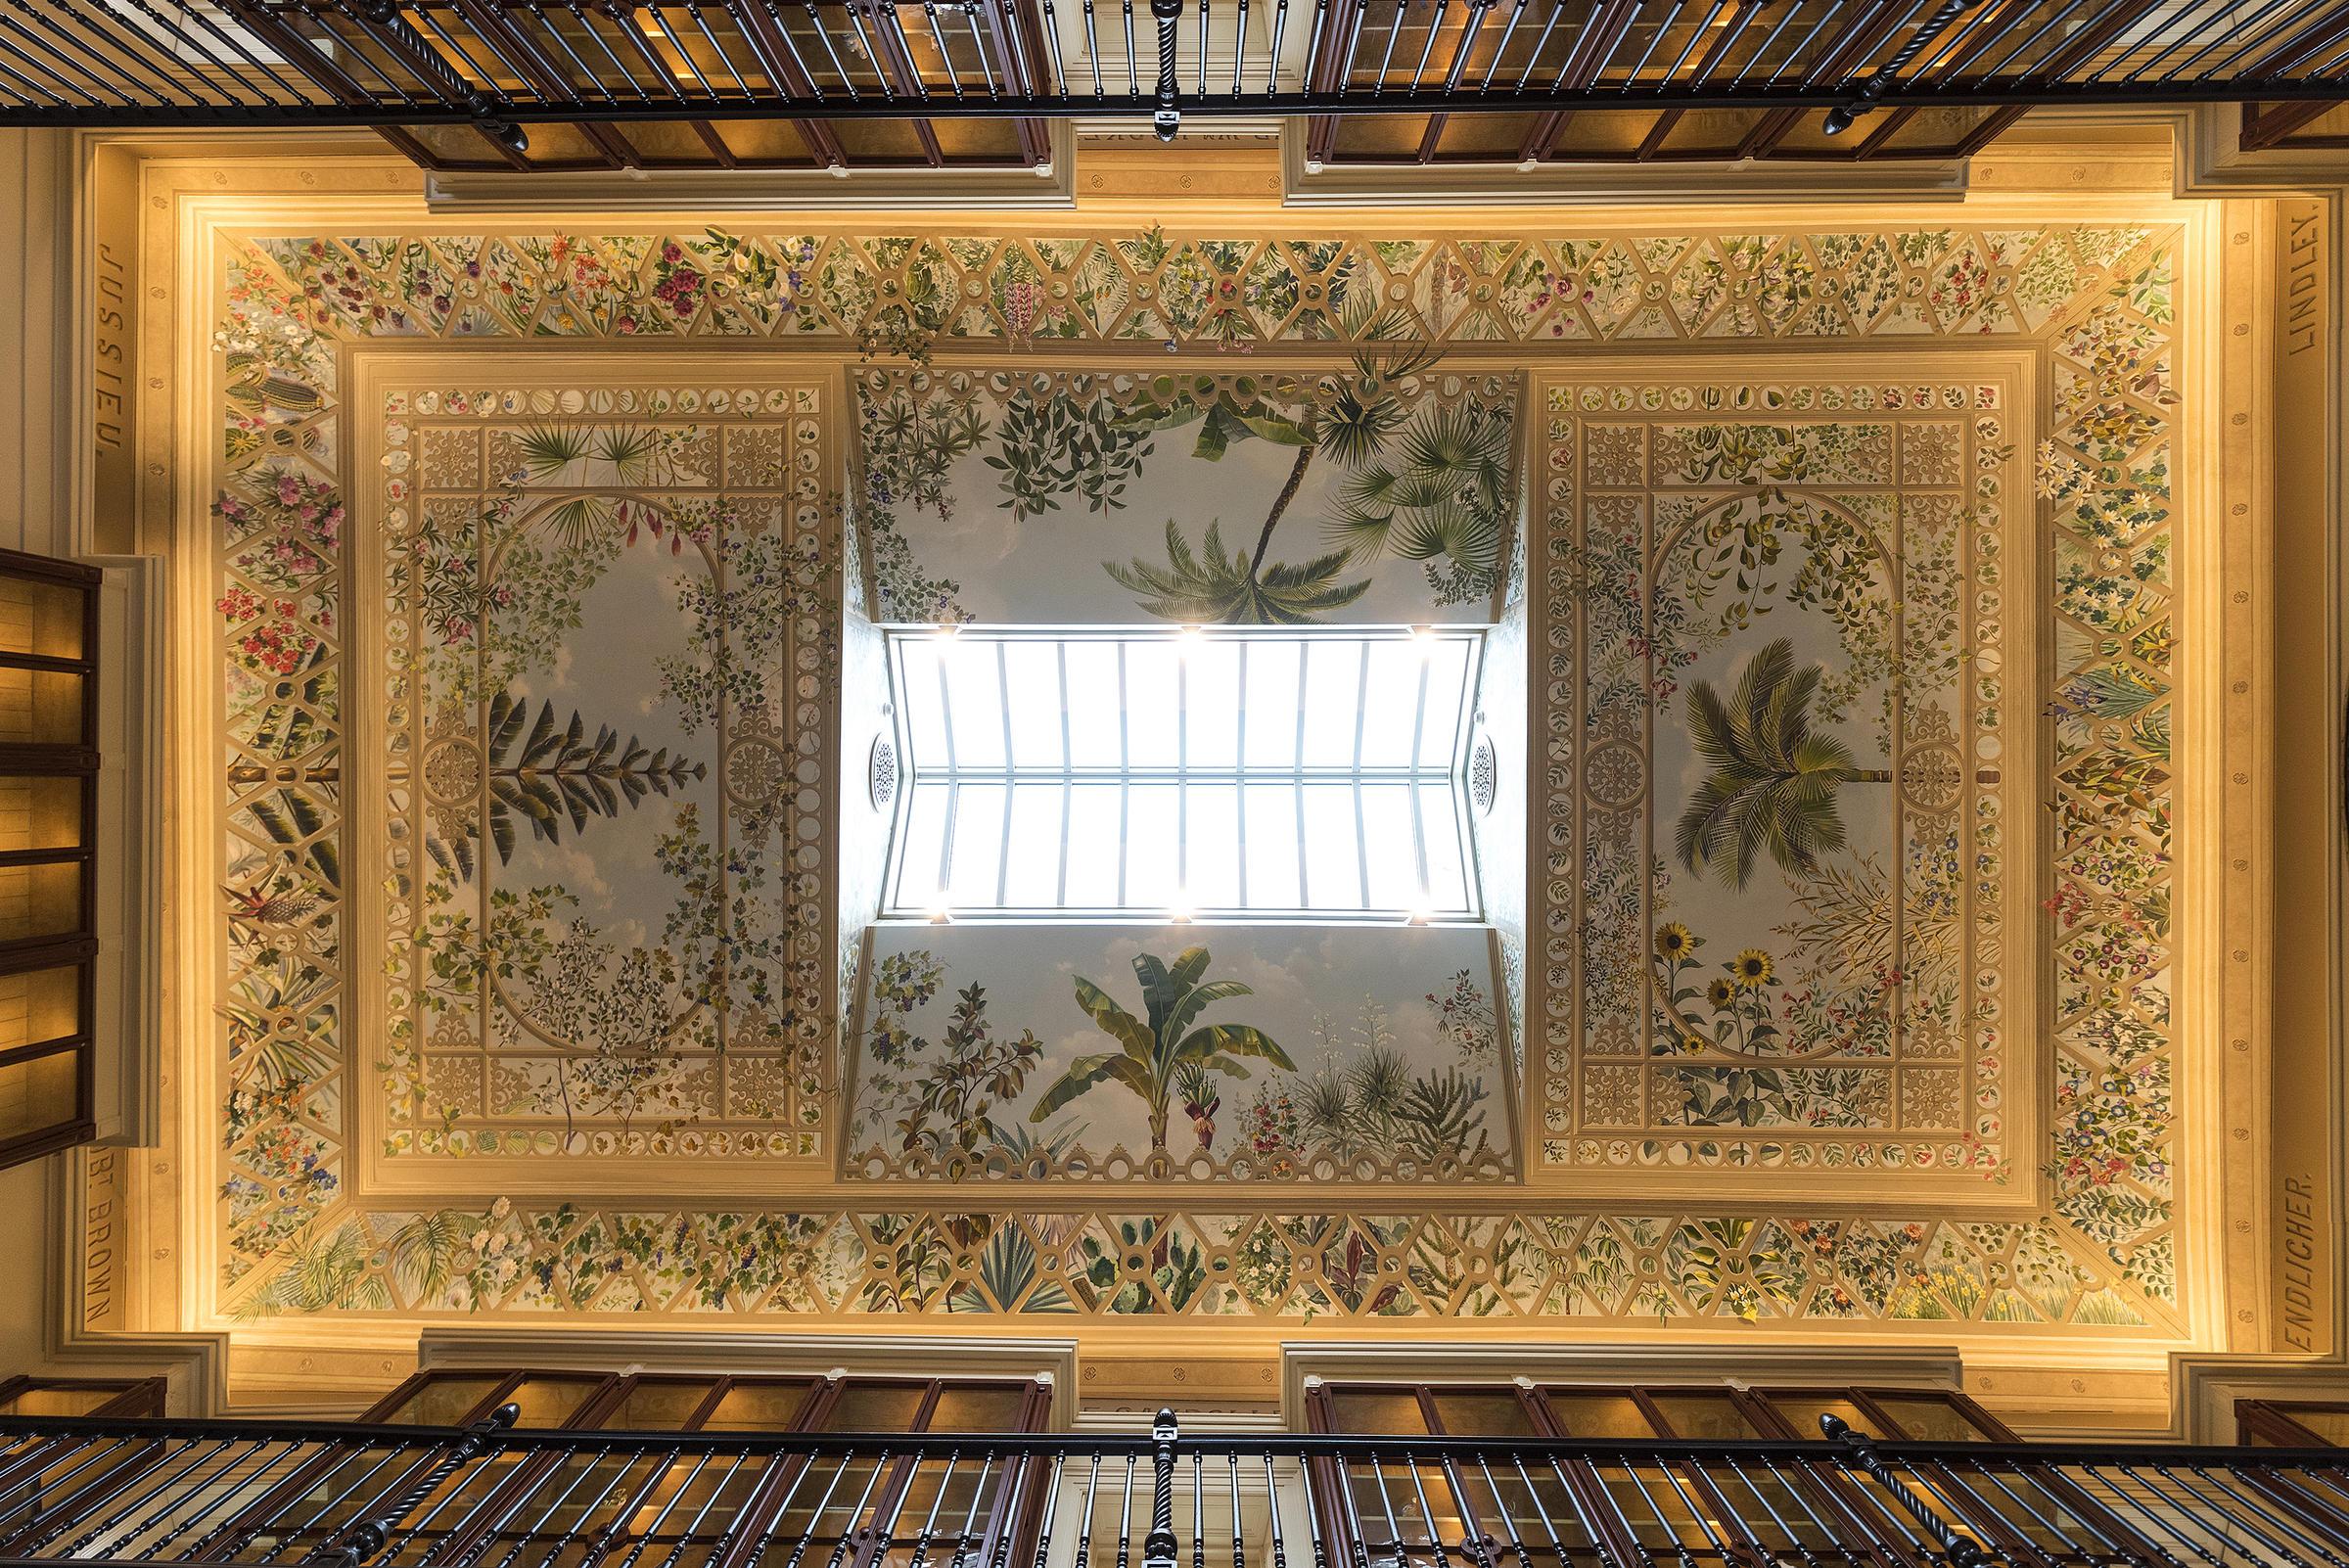 During The Renovation Work, The Garden Hired Artists Based In Brooklyn To  Recreate The Mural That Lines The Ceiling Of The Museum.